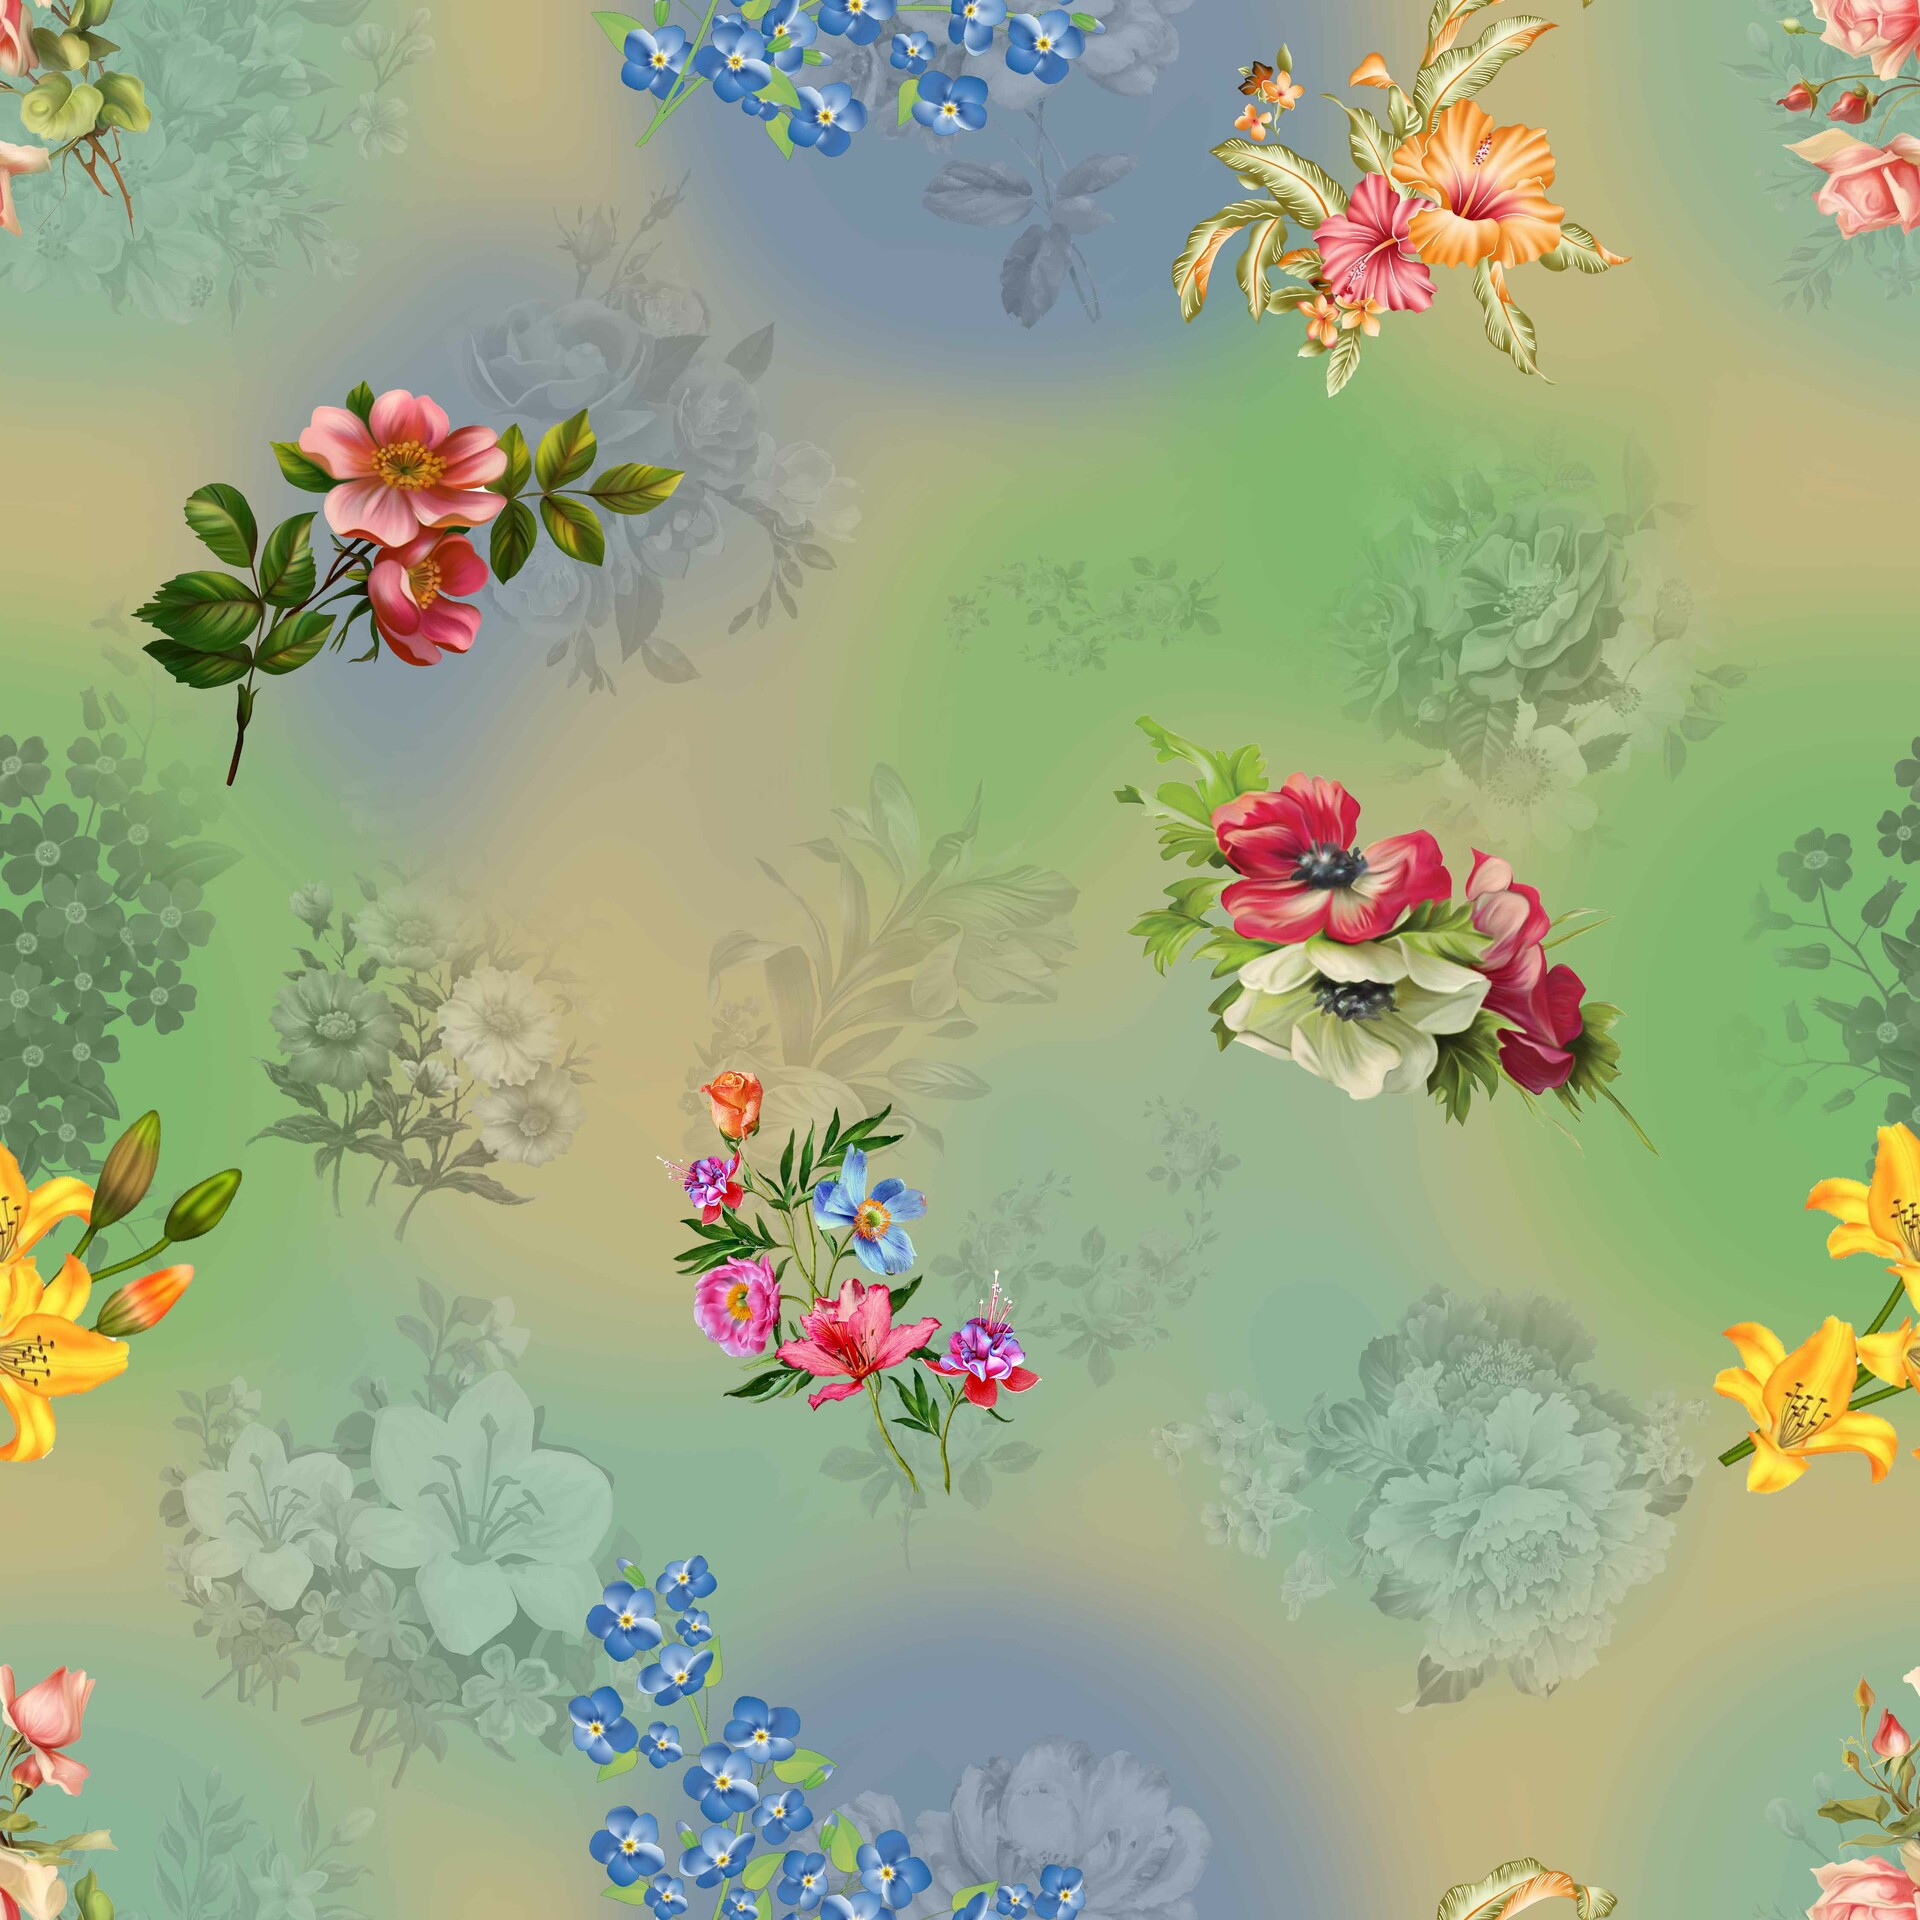 Artstation Classic Wallpaper Seamless Vintage Flower Pattern On